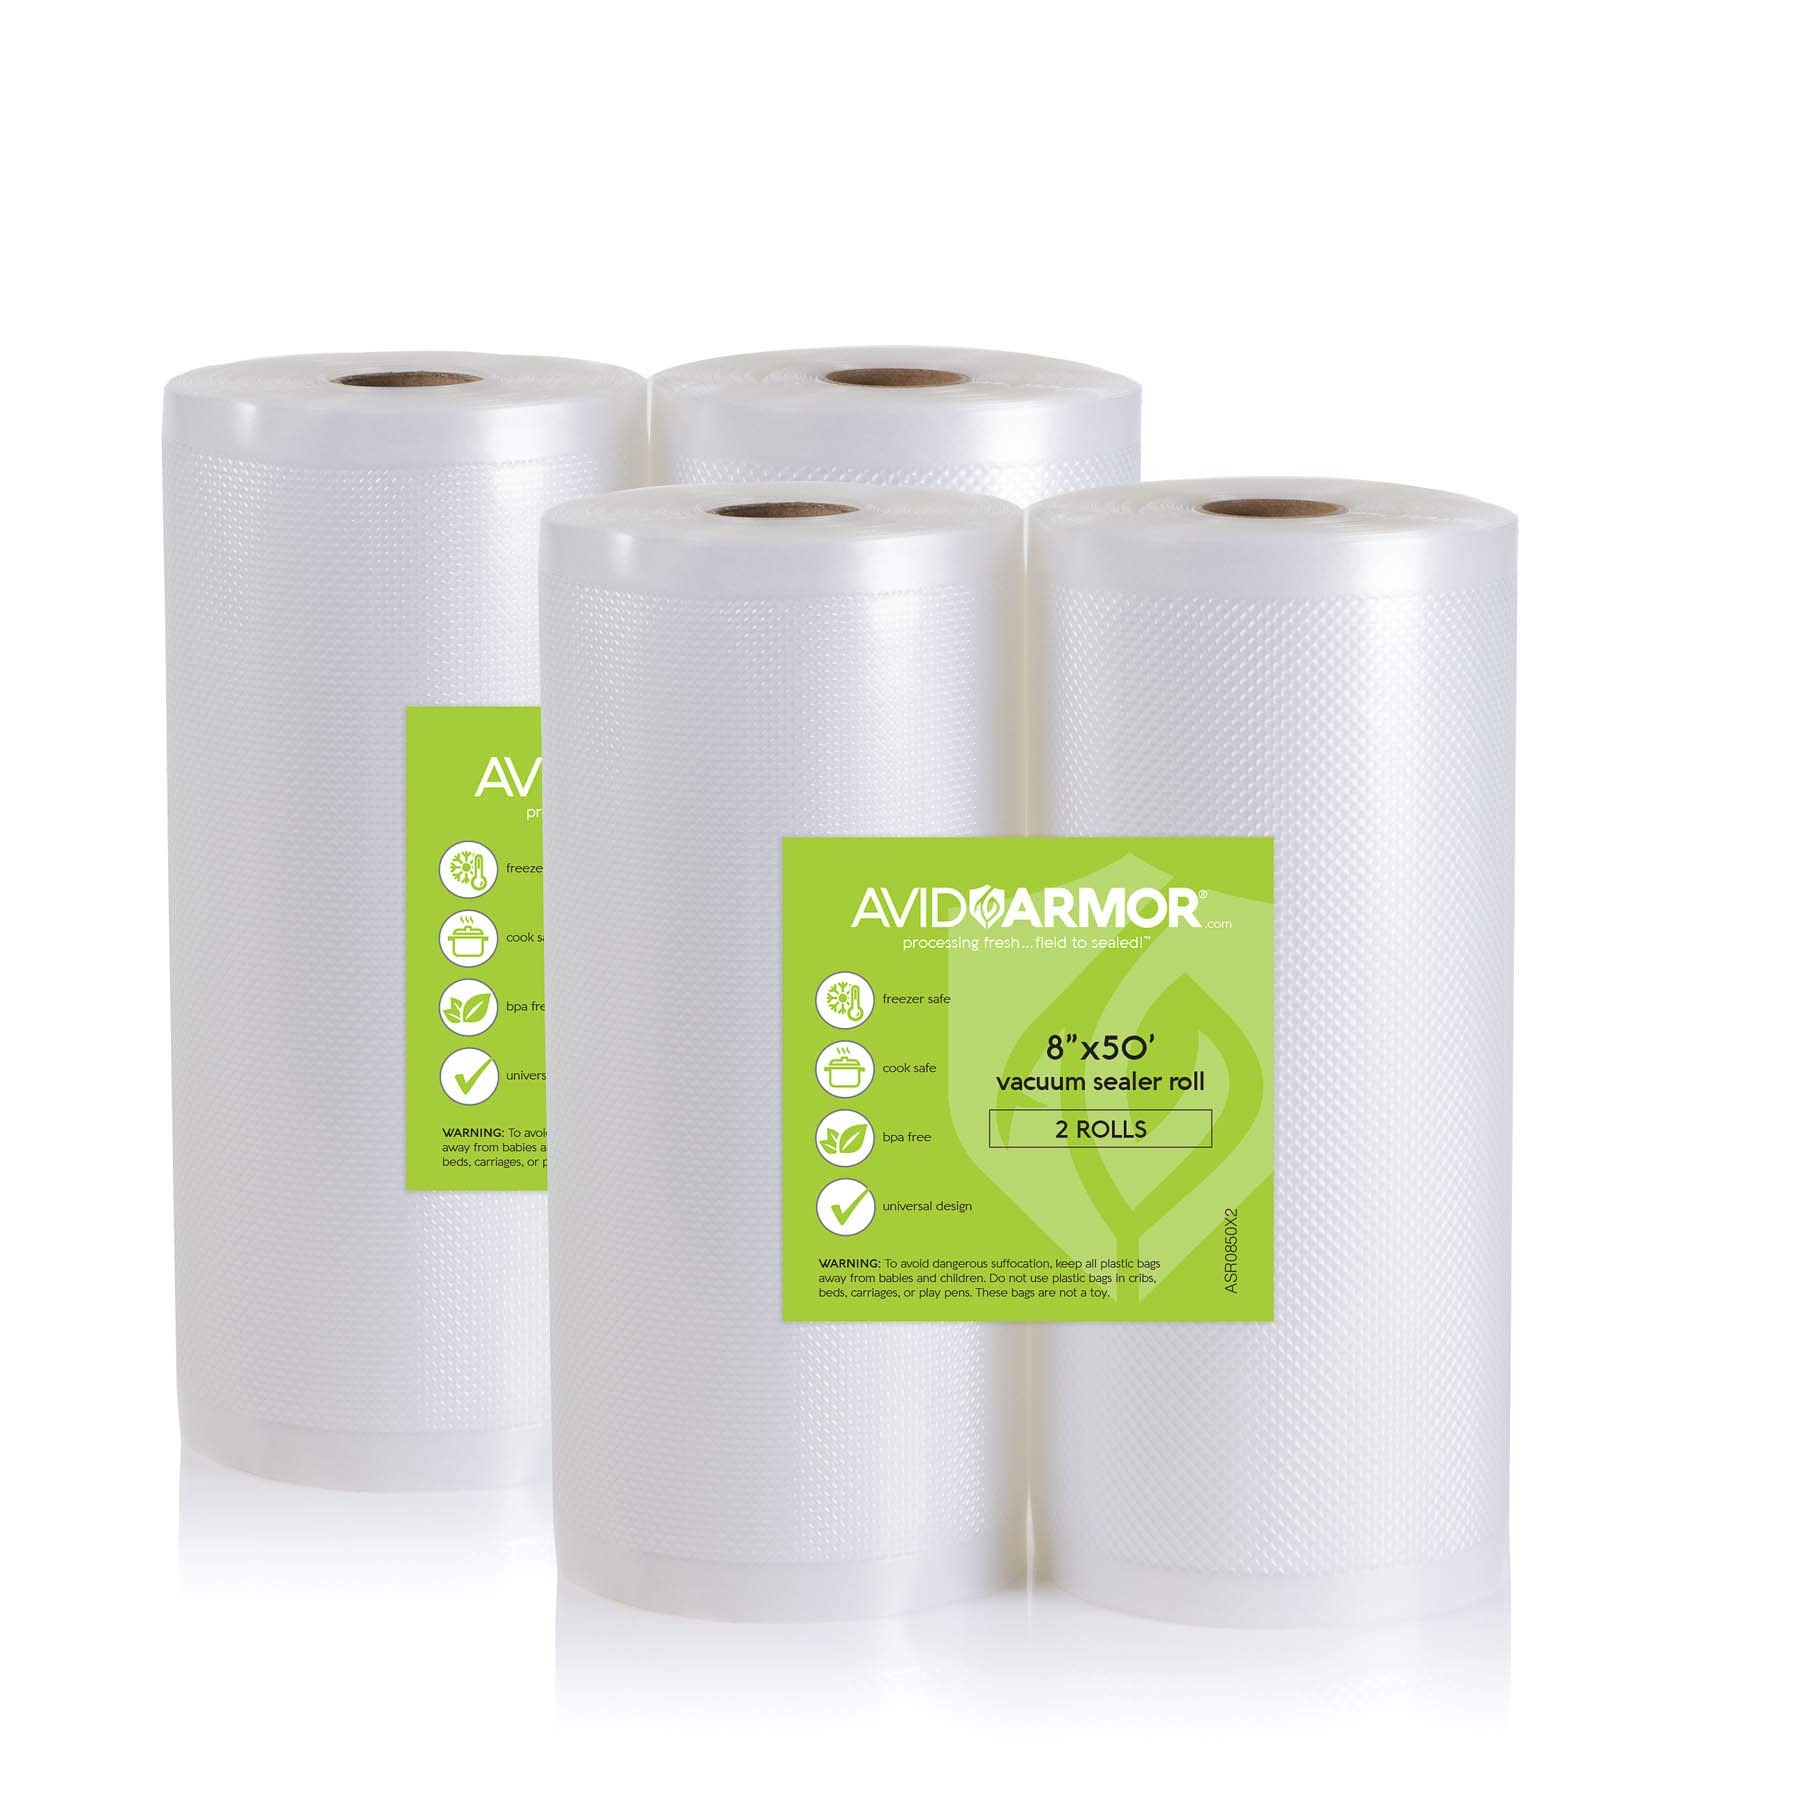 4 Large Vacuum Sealer Bag Rolls 8 Inch x 50 Feet for Food Saver, Seal a Meal Vac Sealers Heavy Duty Commercial BPA Free Sous Vide Safe Make Bags Cut to Length Roll 200 Total Feet Avid Armor by Avid Armor